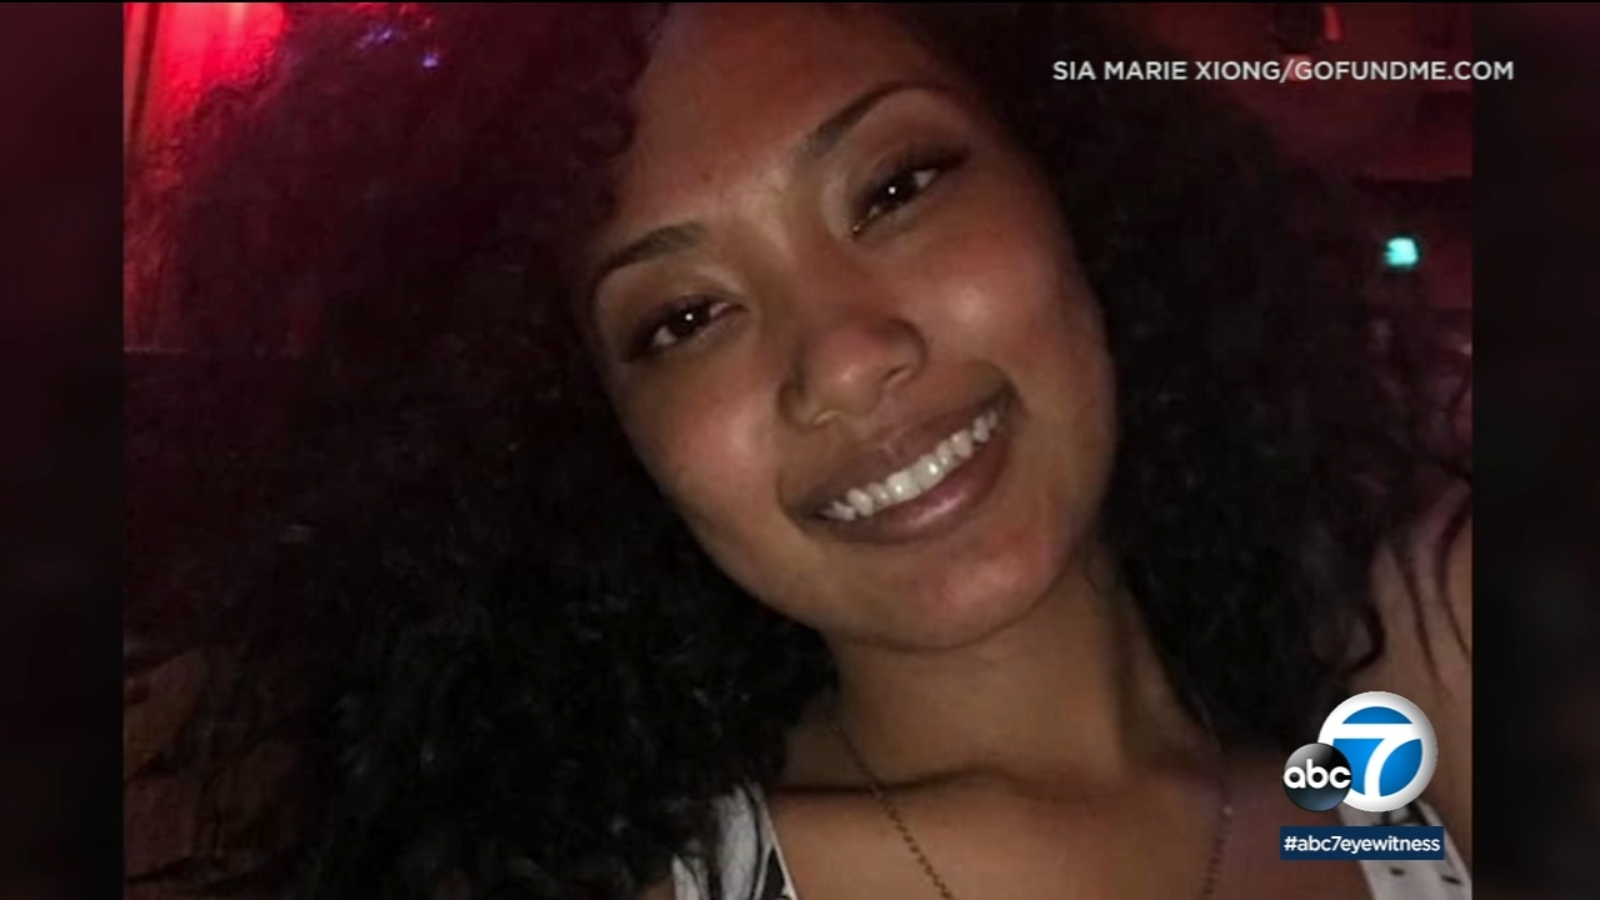 abc7.com: Compton shooting: Family of murdered 27-year-old Asian woman calls for hate-crime investigation